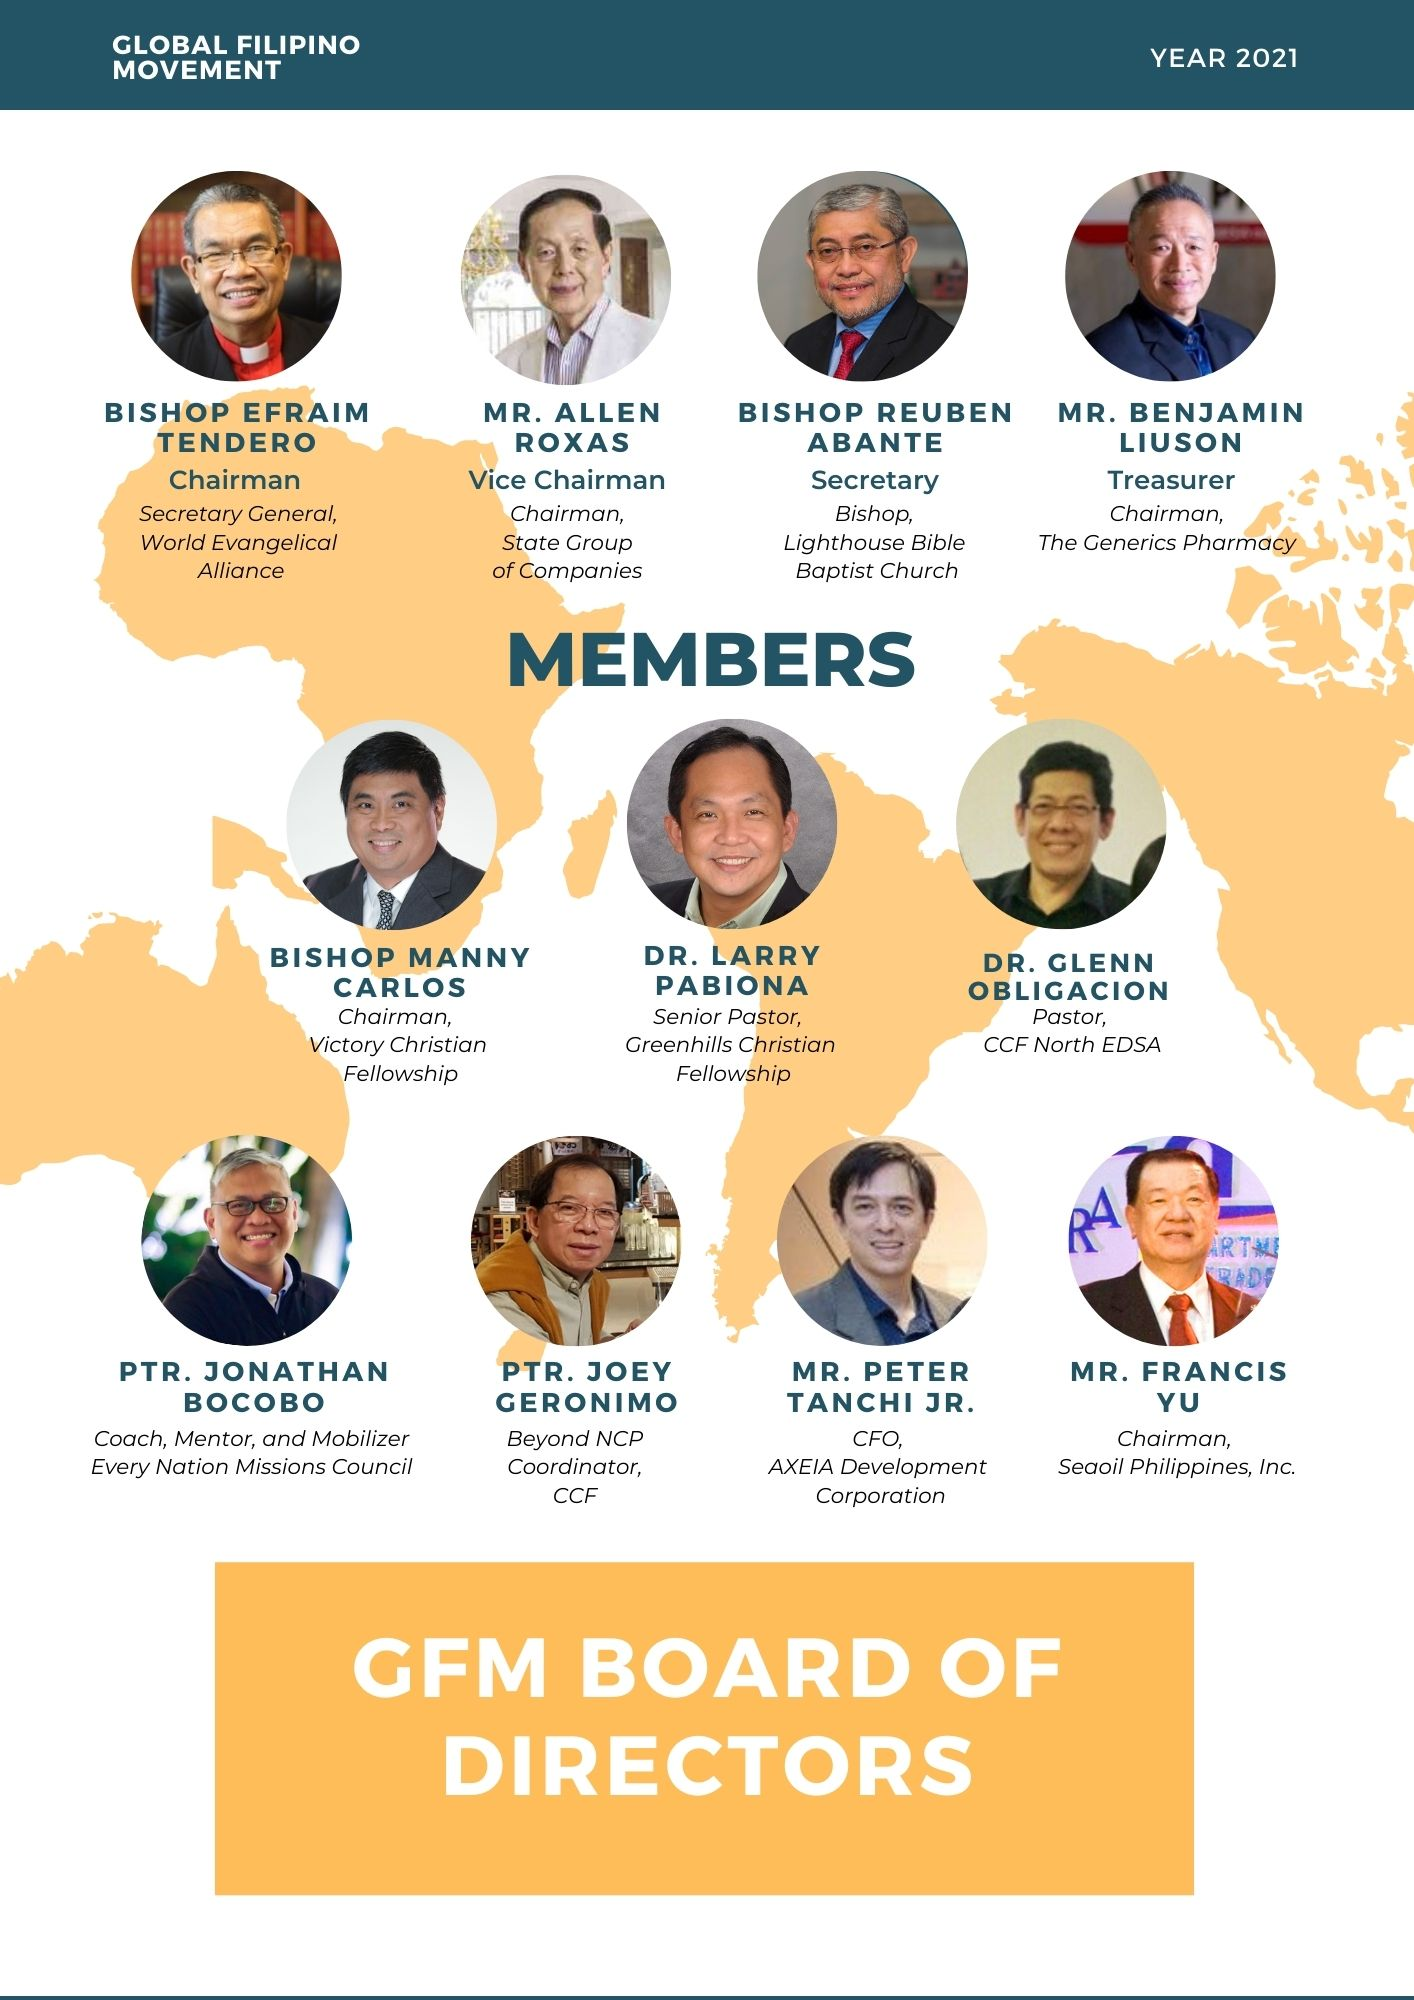 THE GFM BOARD OF DIRECTORS